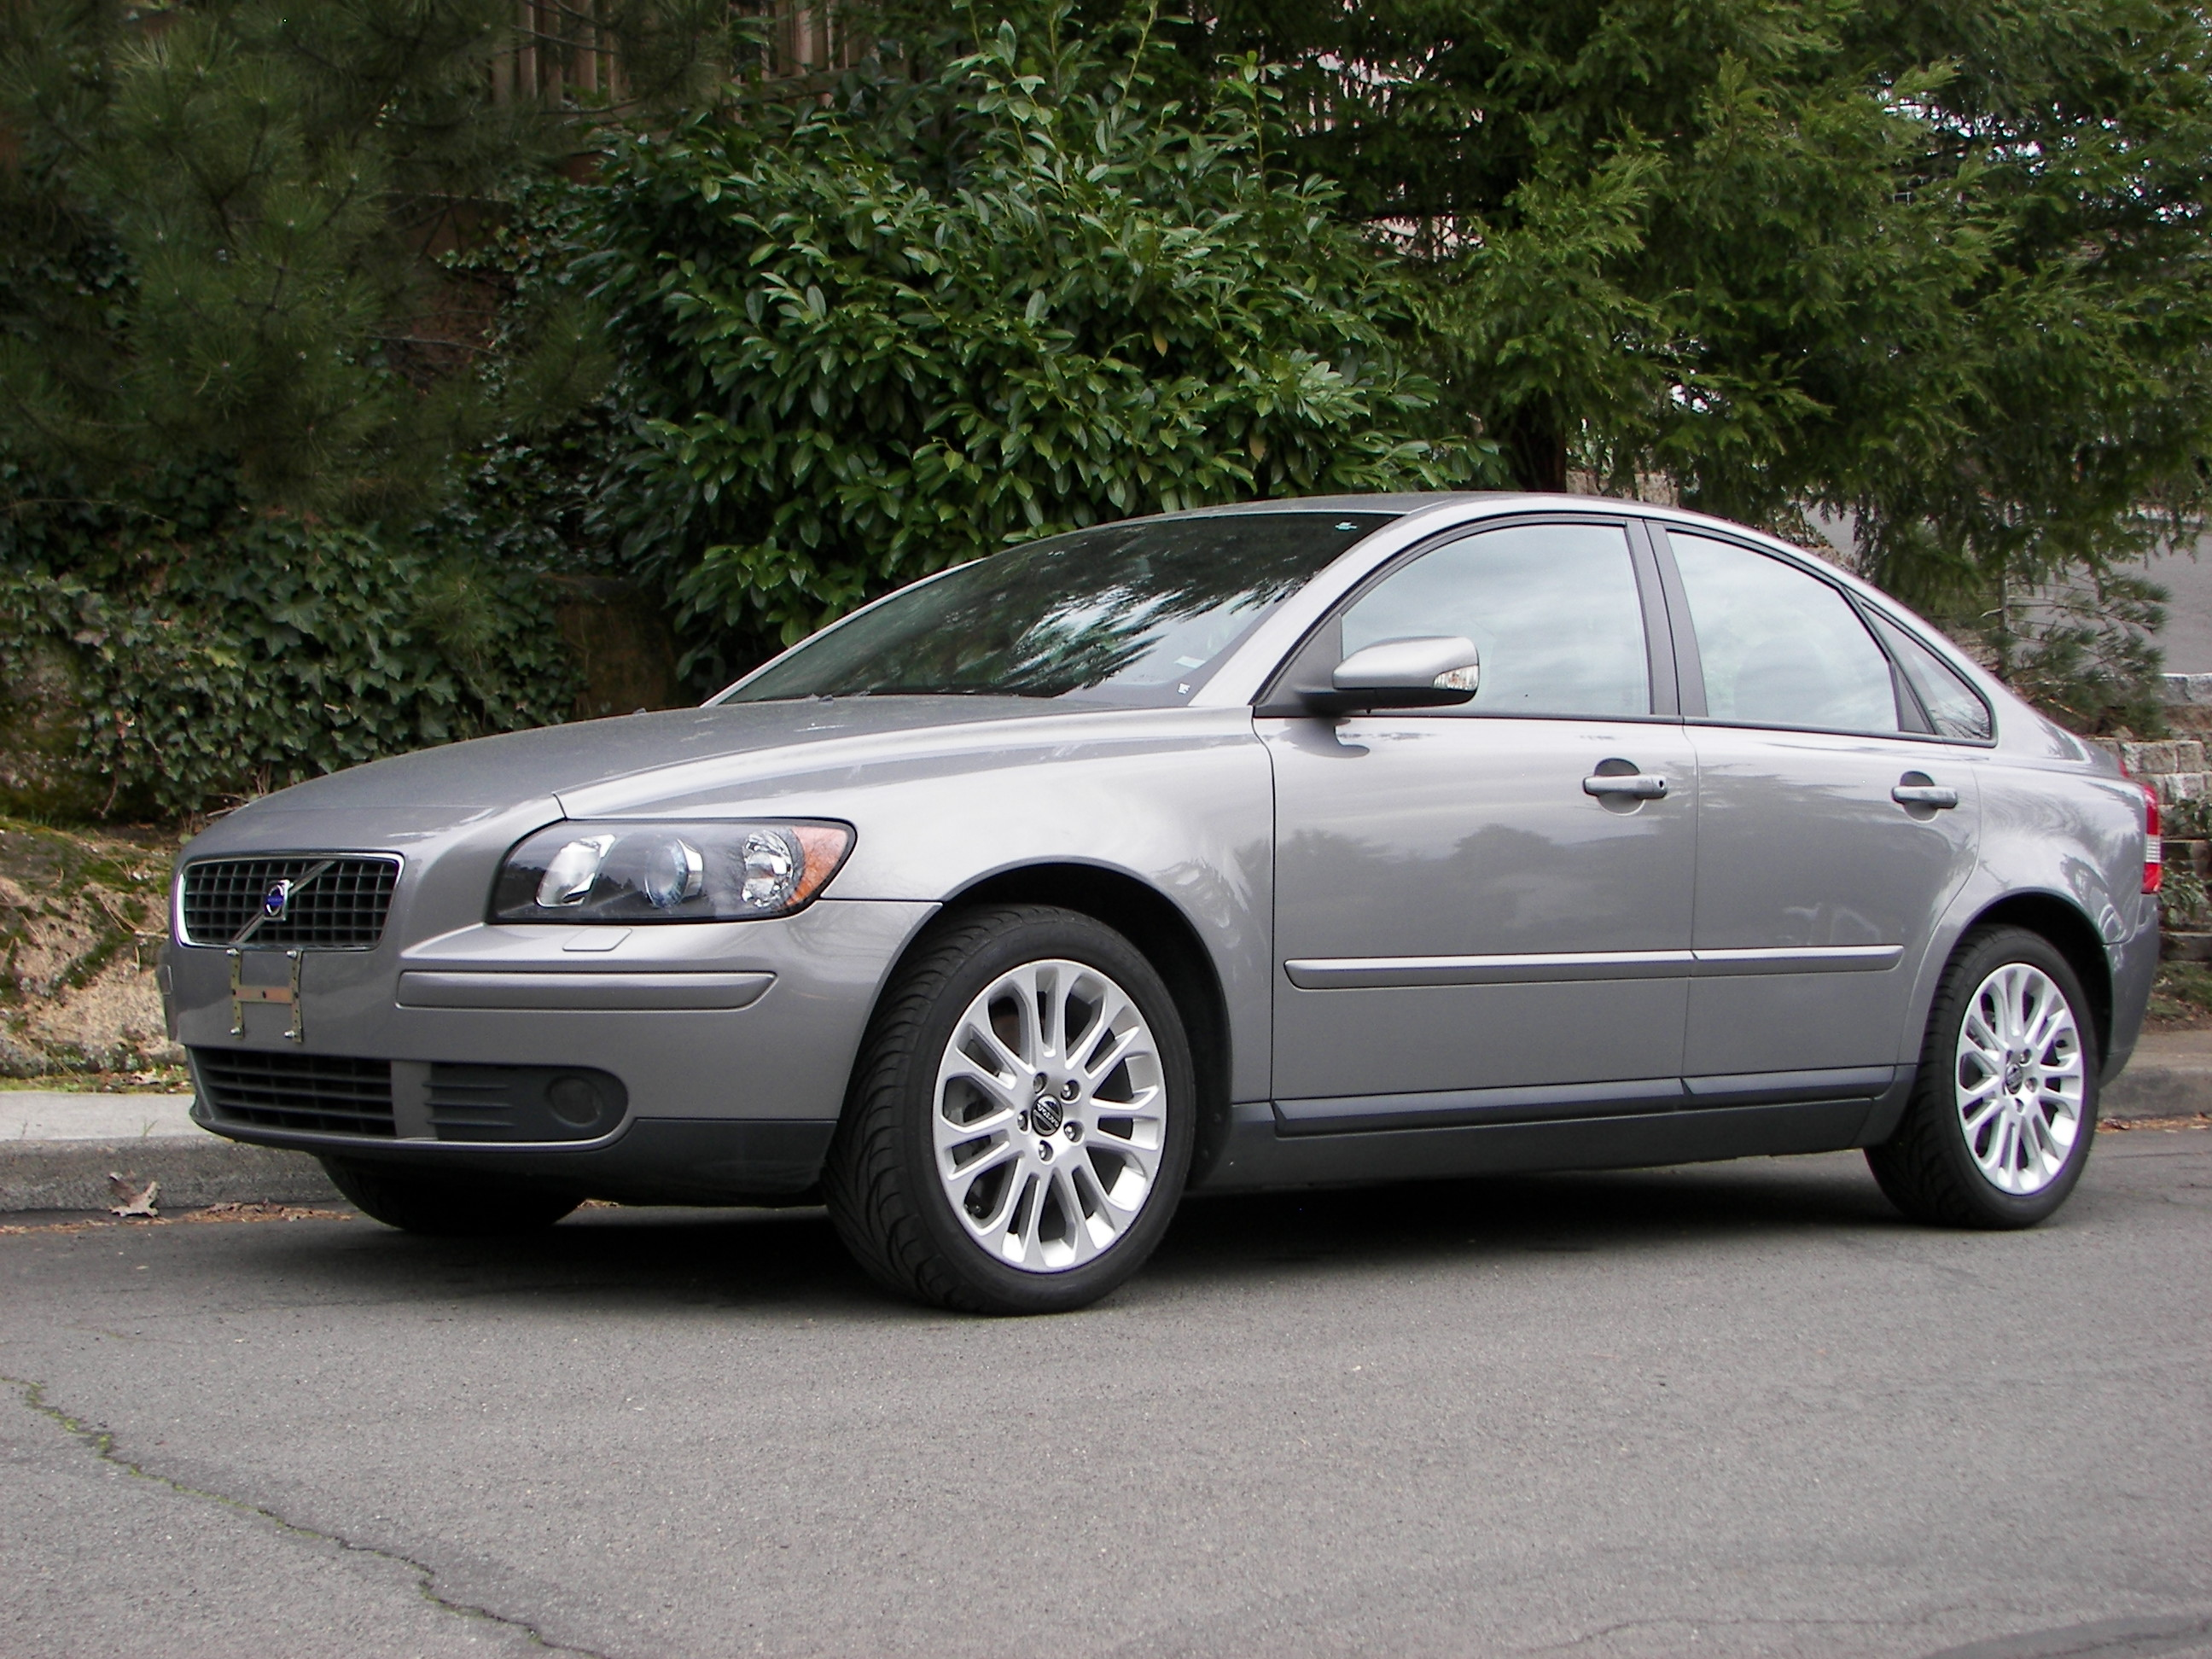 volvo s40 t5 picture 14 reviews news specs buy car. Black Bedroom Furniture Sets. Home Design Ideas